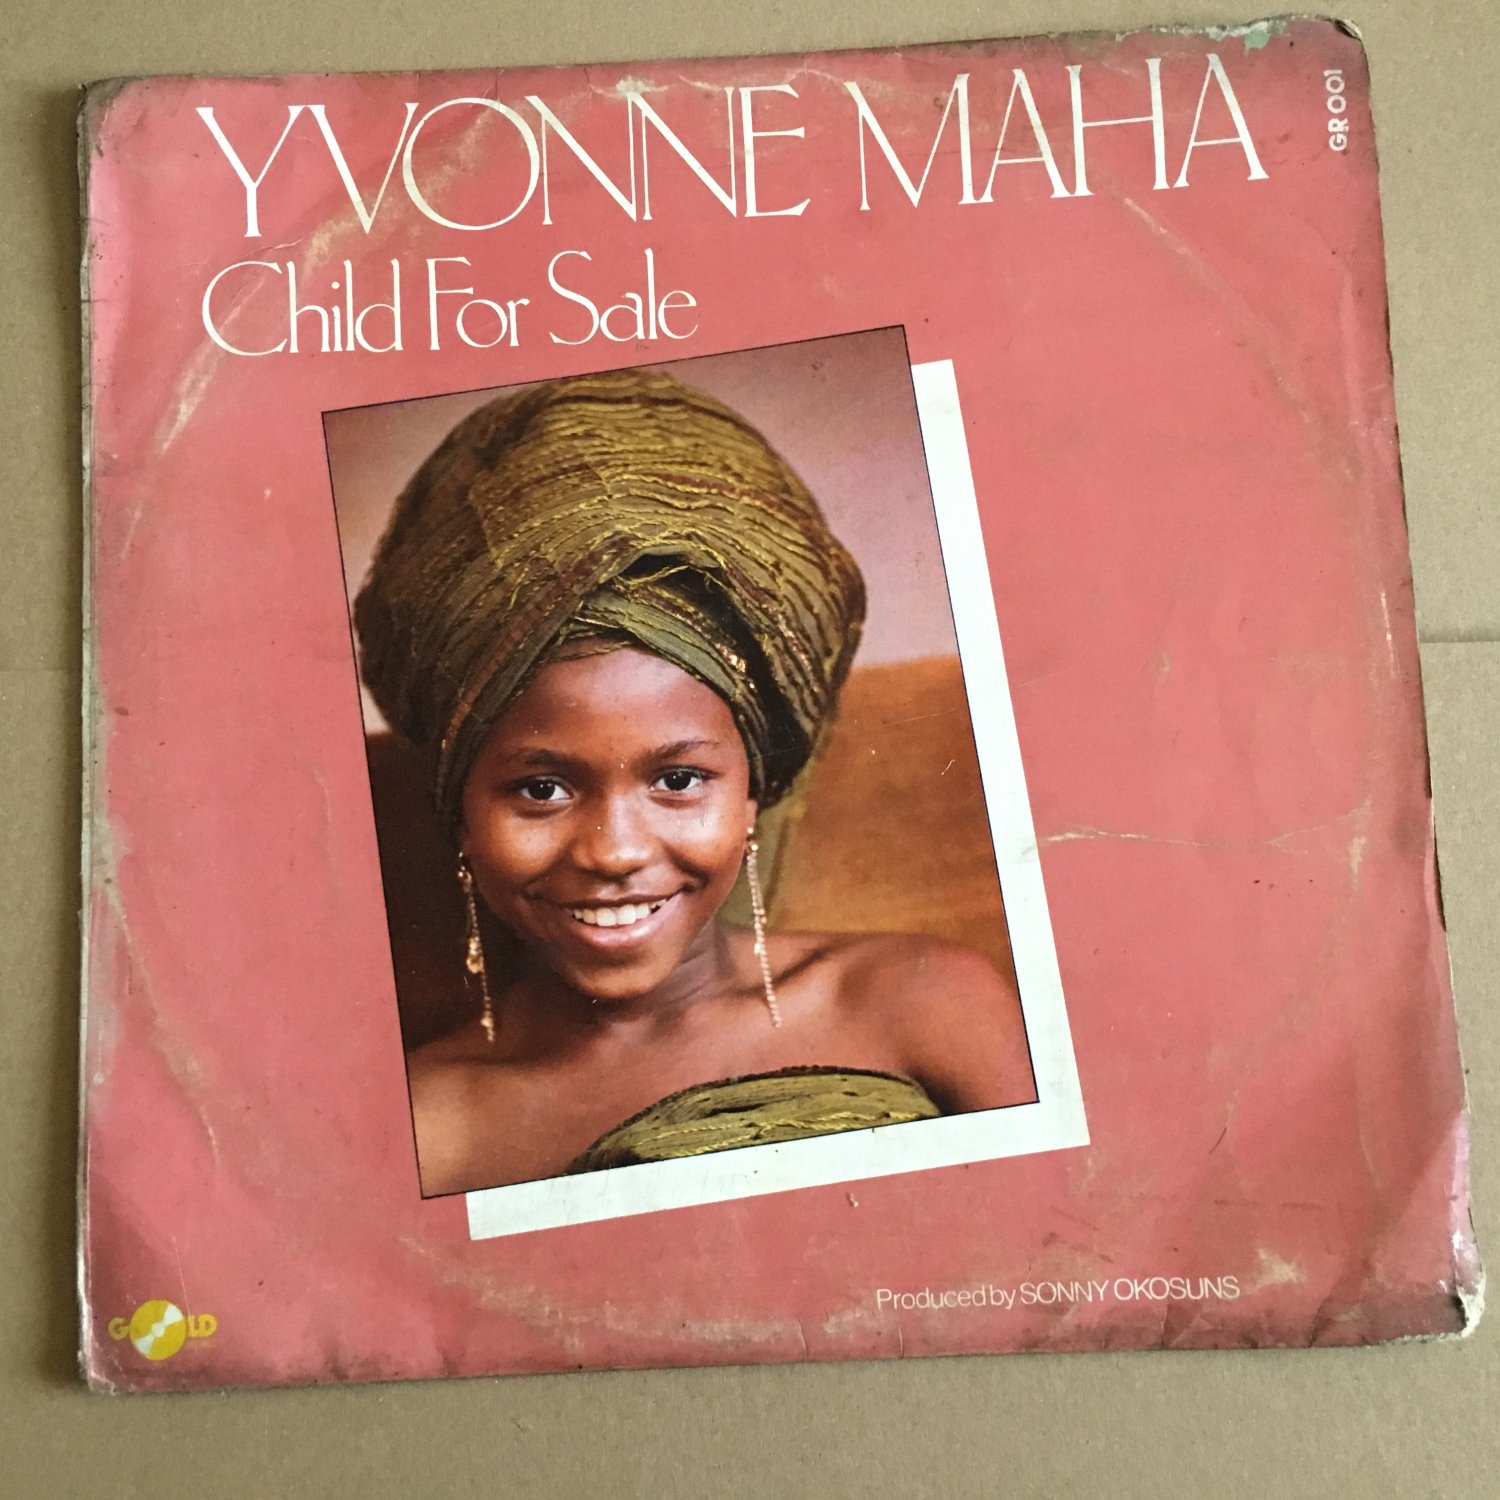 YVONNE MAHA LP child for sale SOUTH AFRICA DISCO FUNK mp3 LISTEN